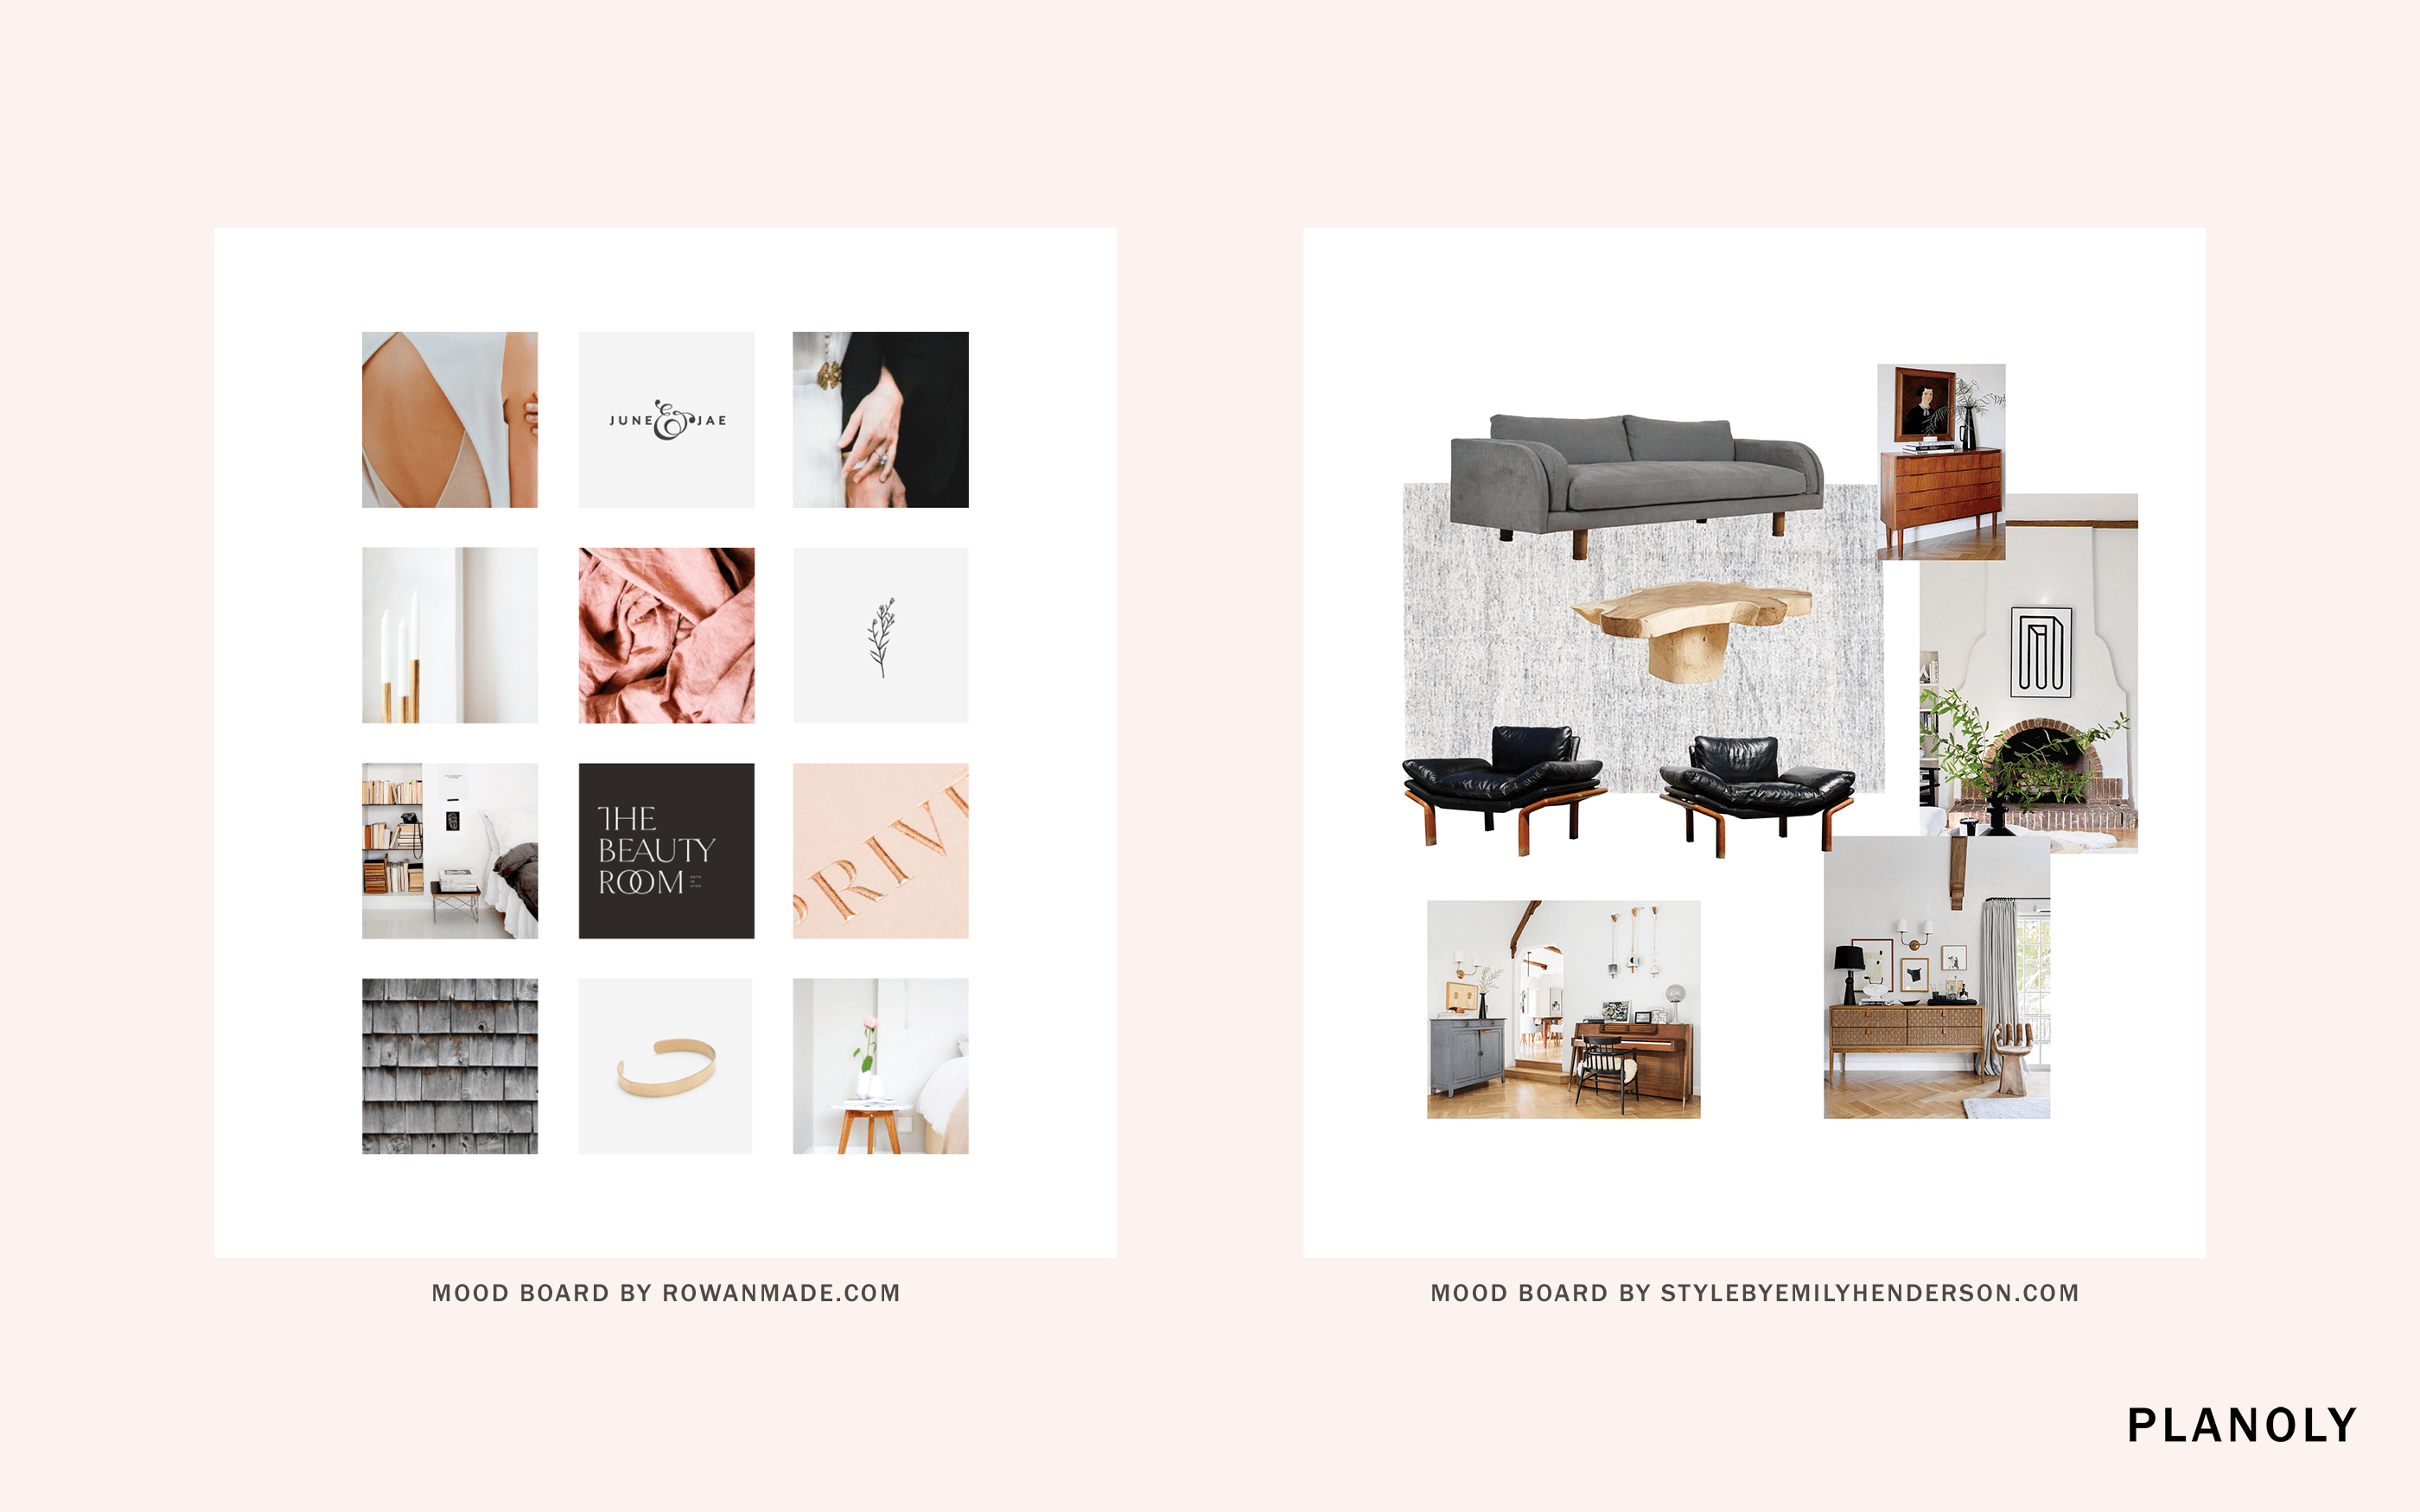 Planoly-Blog-Post-Mood-Board-Collection-StoriesEdit-Image-1